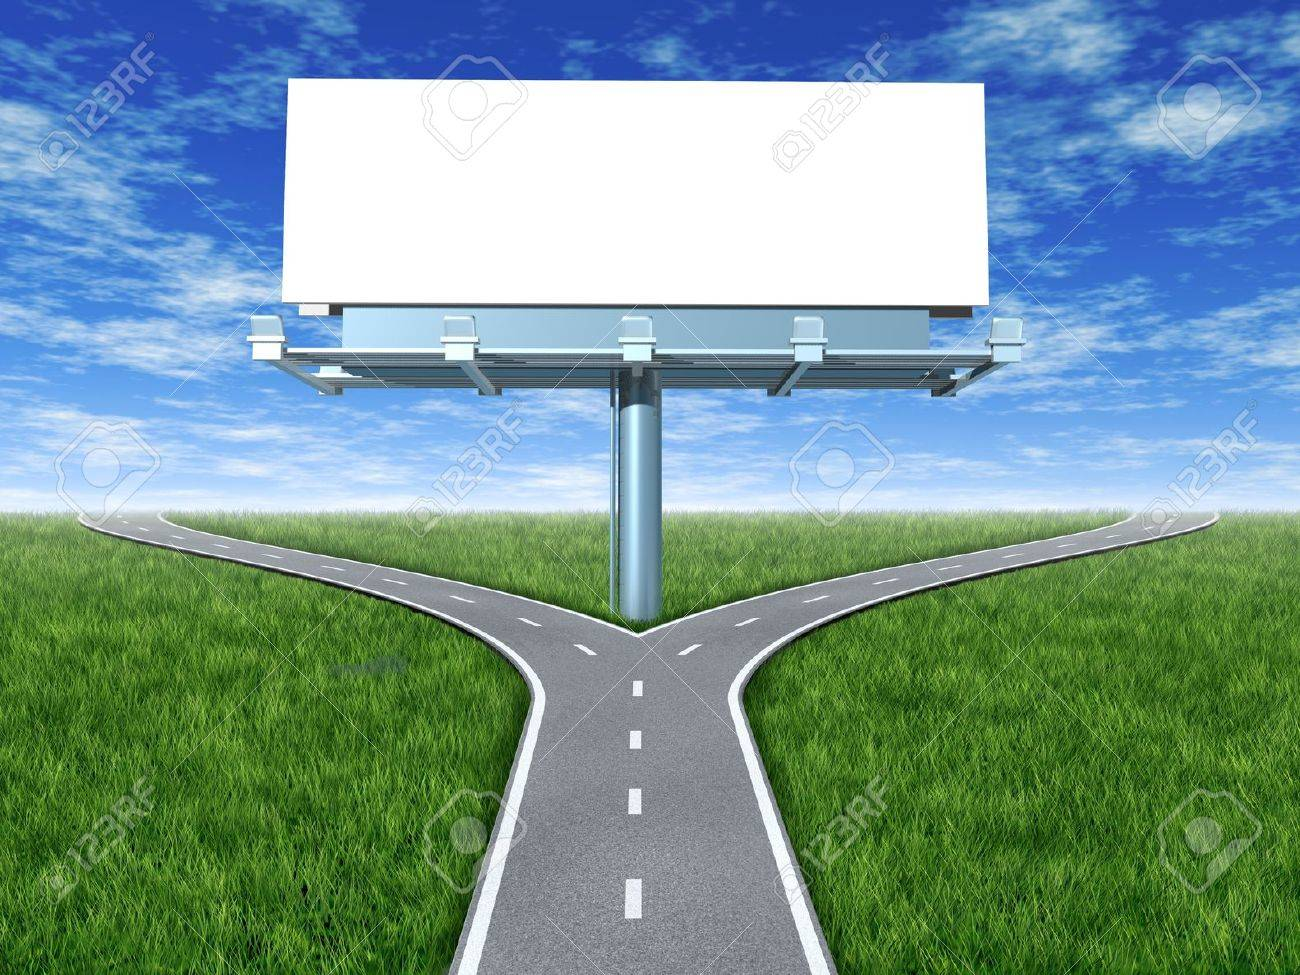 Cross roads with billboard in an outdoor display with grass and blue sky showing a fork in the road representing the concept of a strategic dilemma choosing the right direction to go when facing two equal or similar promotional options. - 10792825